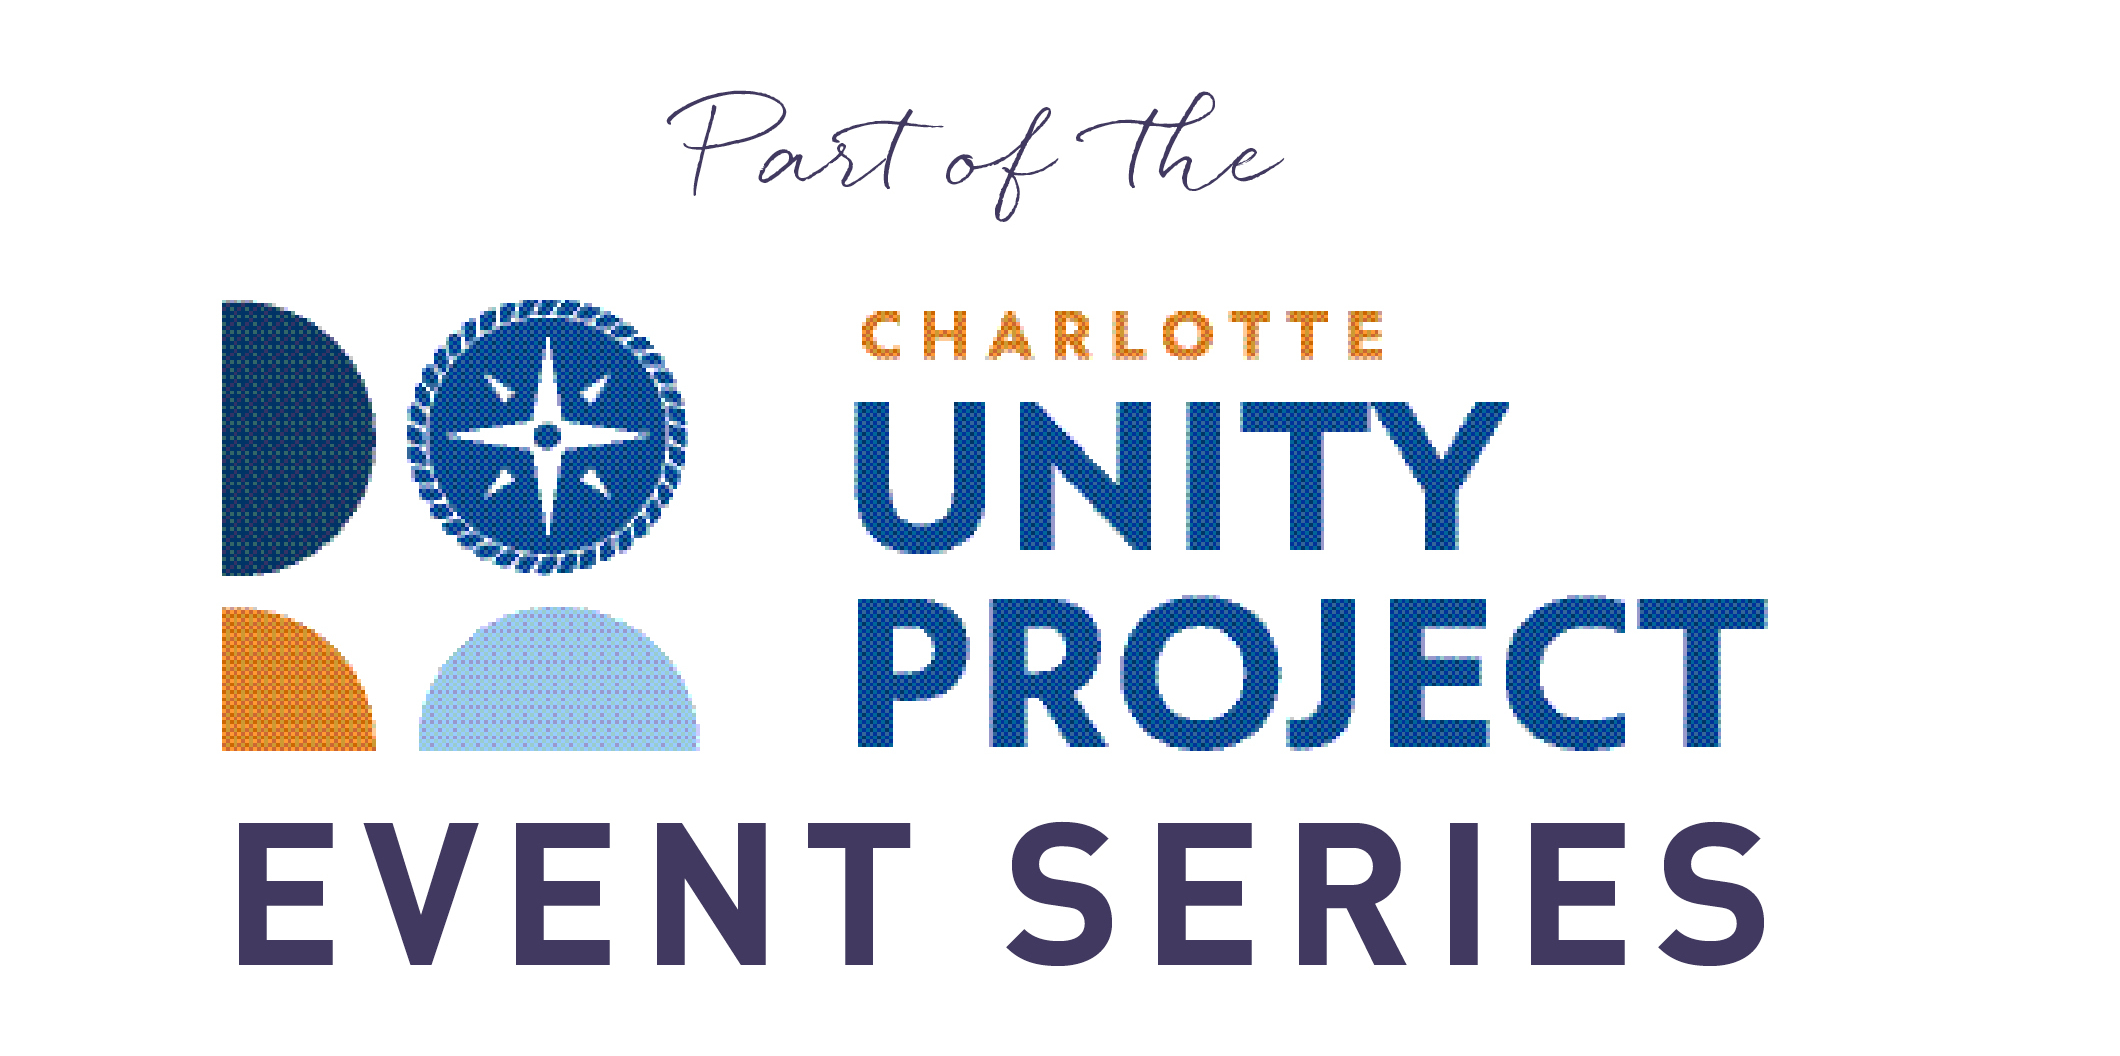 Part of the Unity Project Event Series